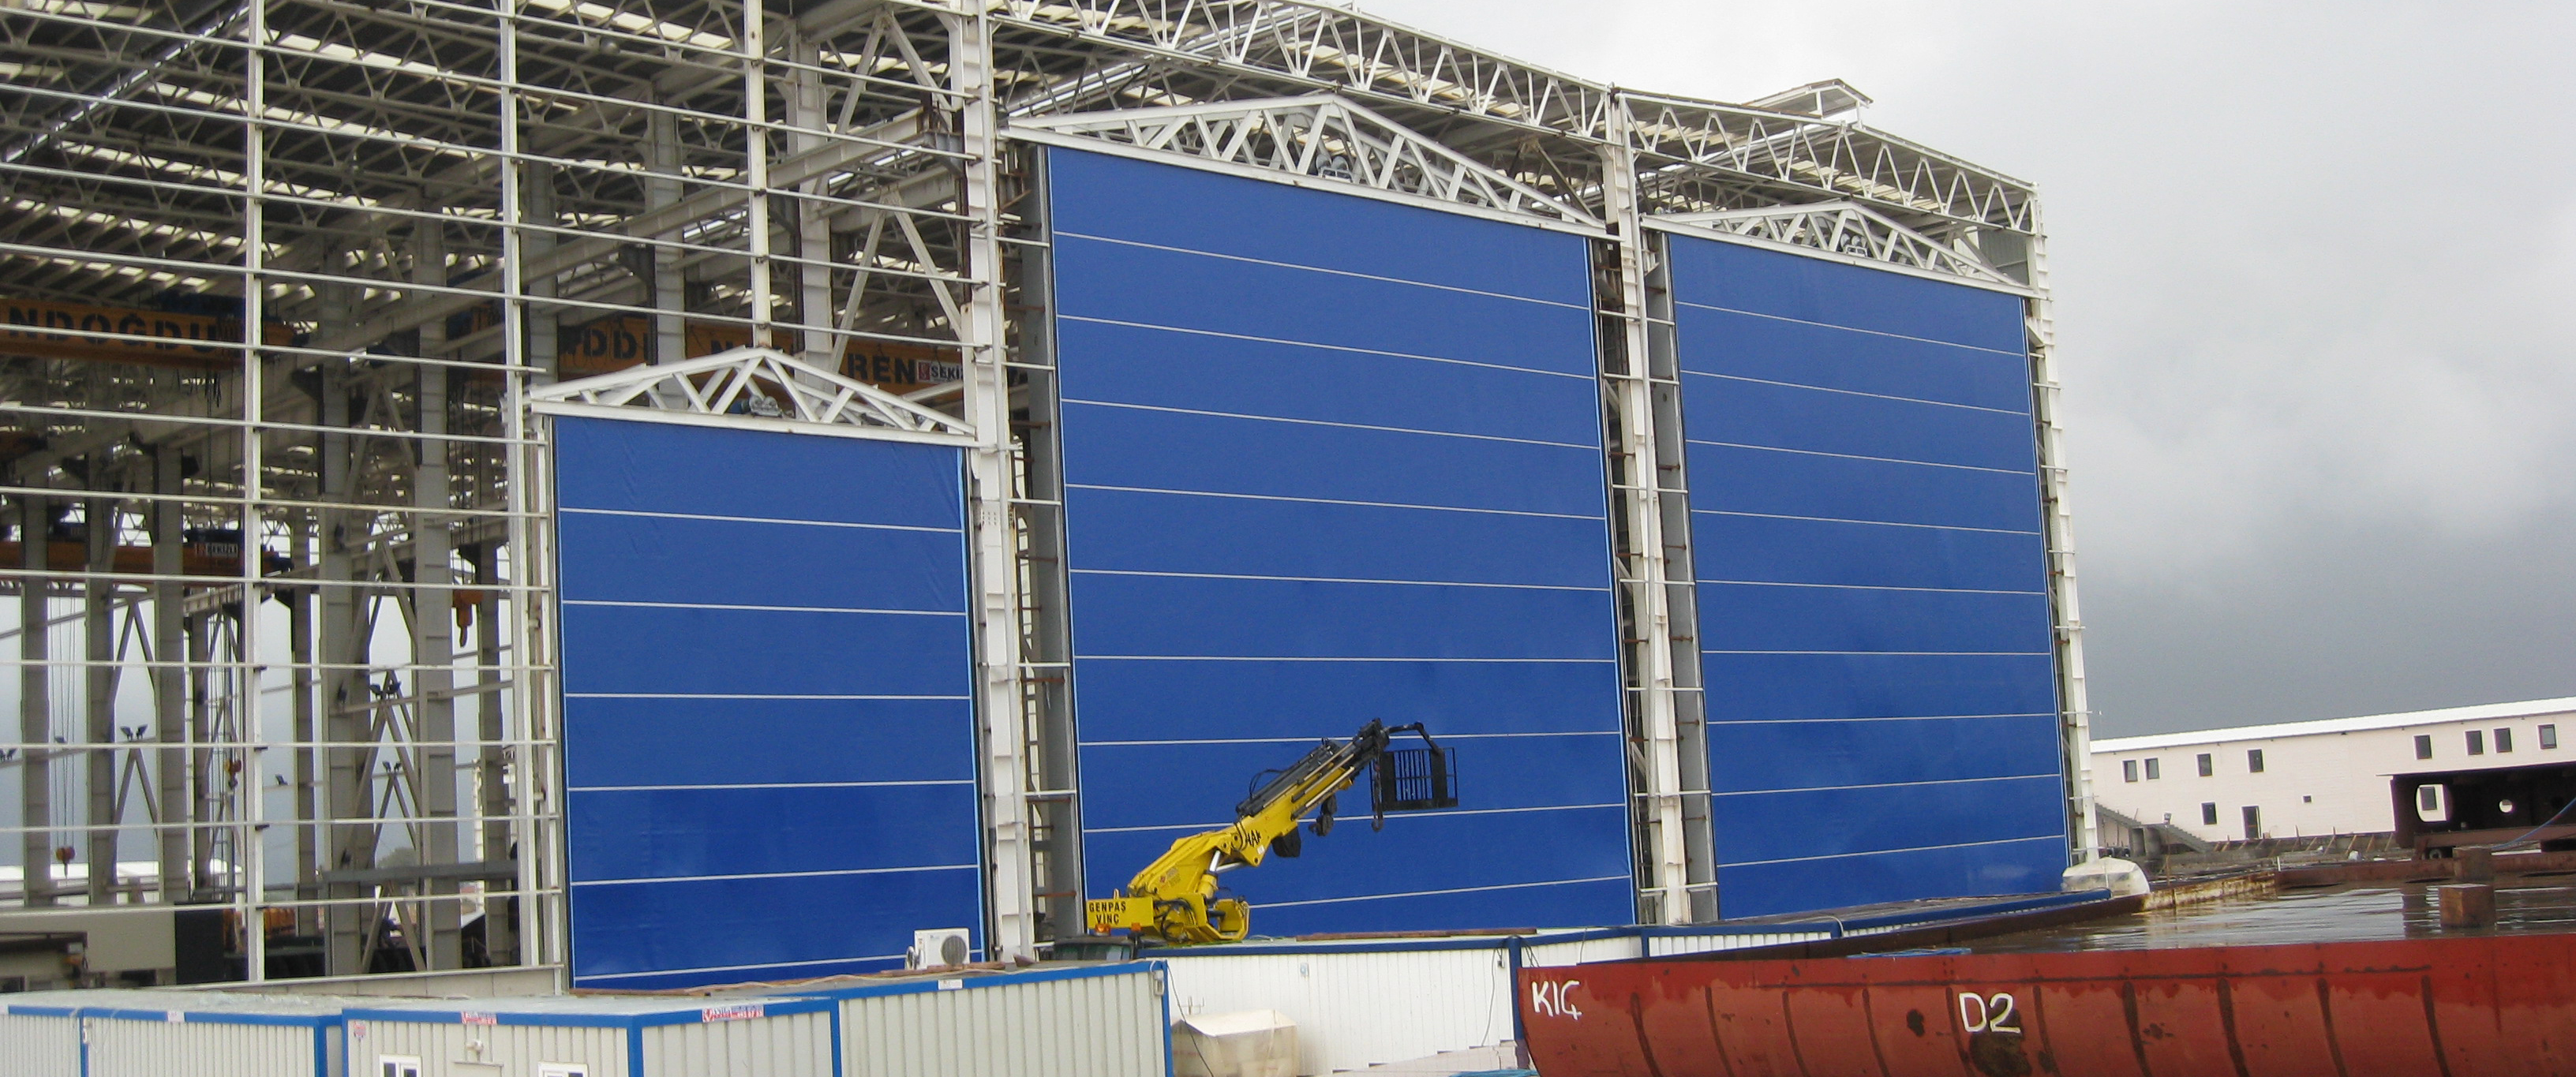 Insulated Aircraft Hangar Door Repair Vortex Doors Blog